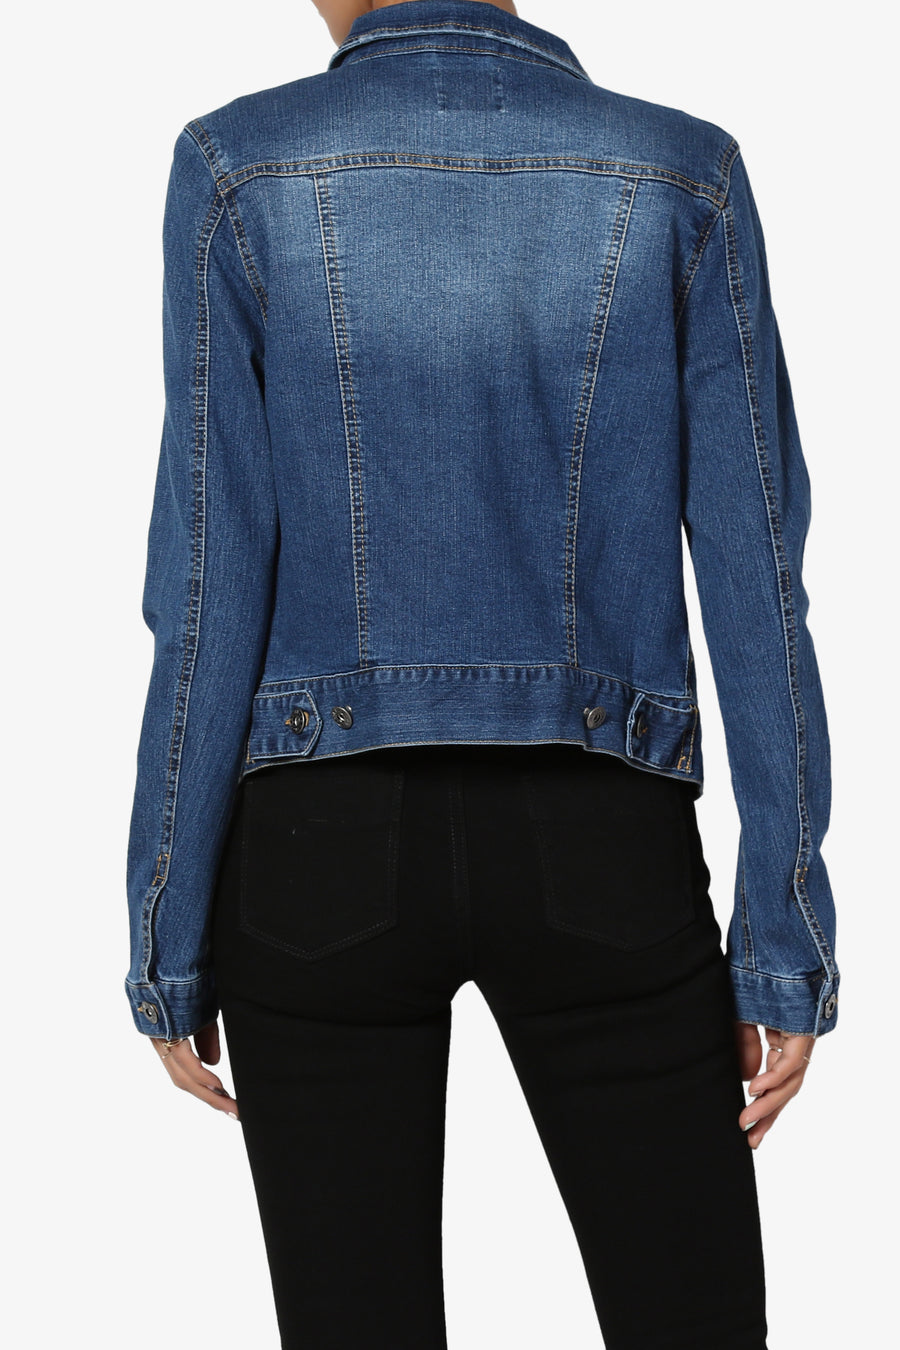 Plim Lightweight Slim Denim Jacket - TheMogan